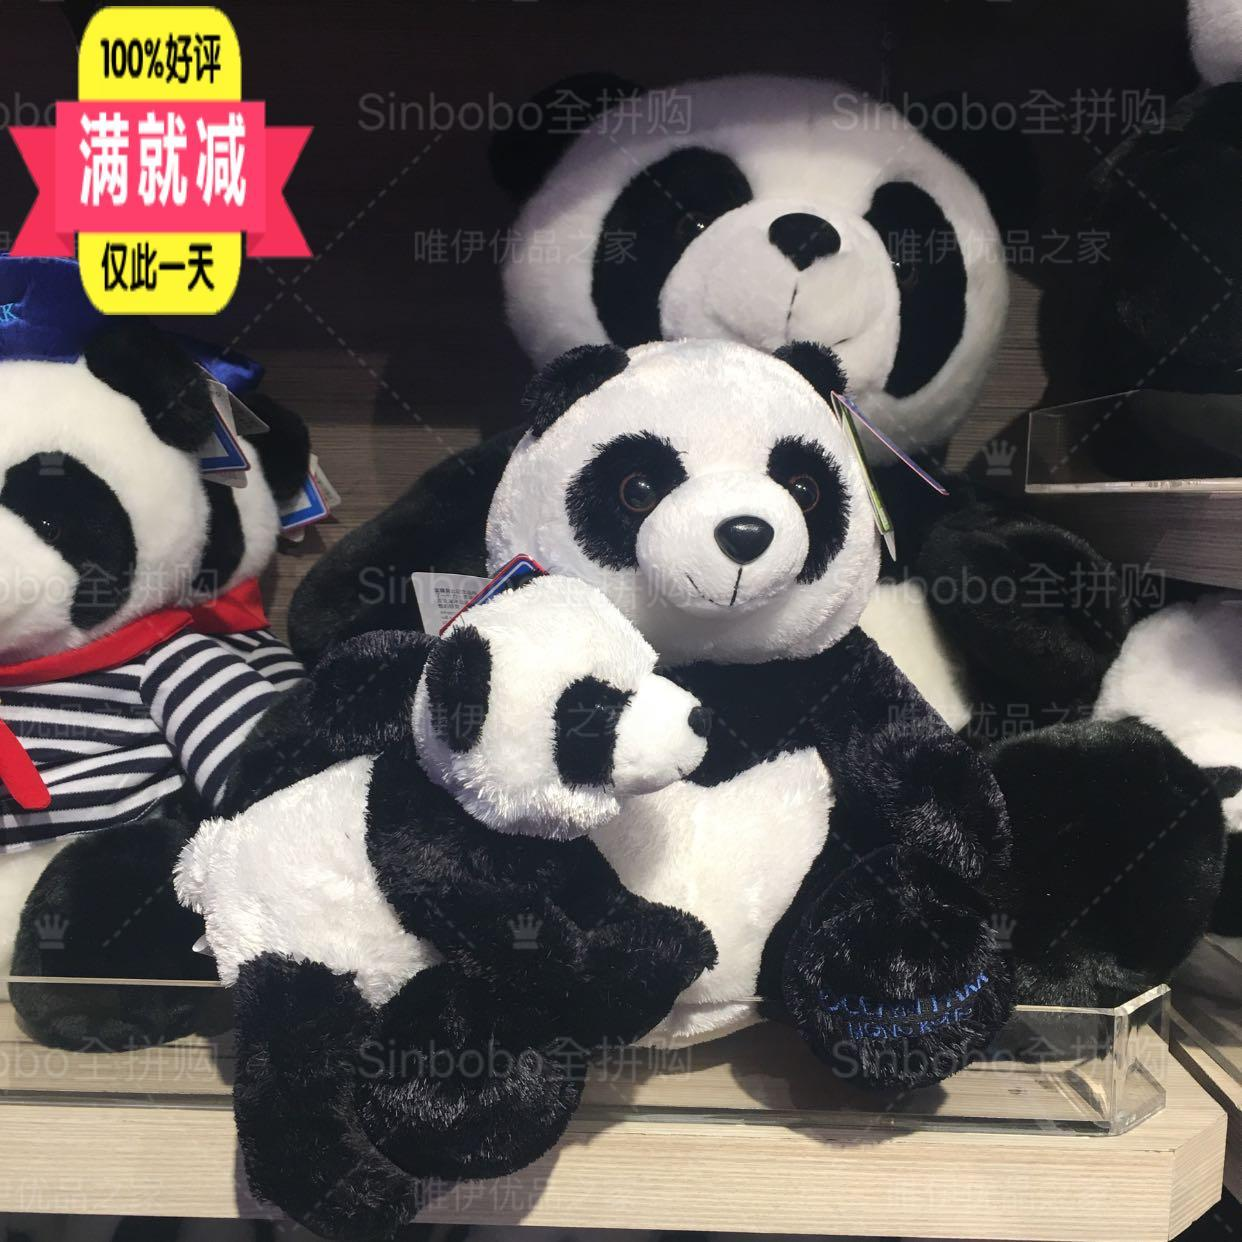 Ocean Park Hong Kong Purchasing Black Eye Panda Doll Birthday Gift Recommended Non Authentic Package Claims